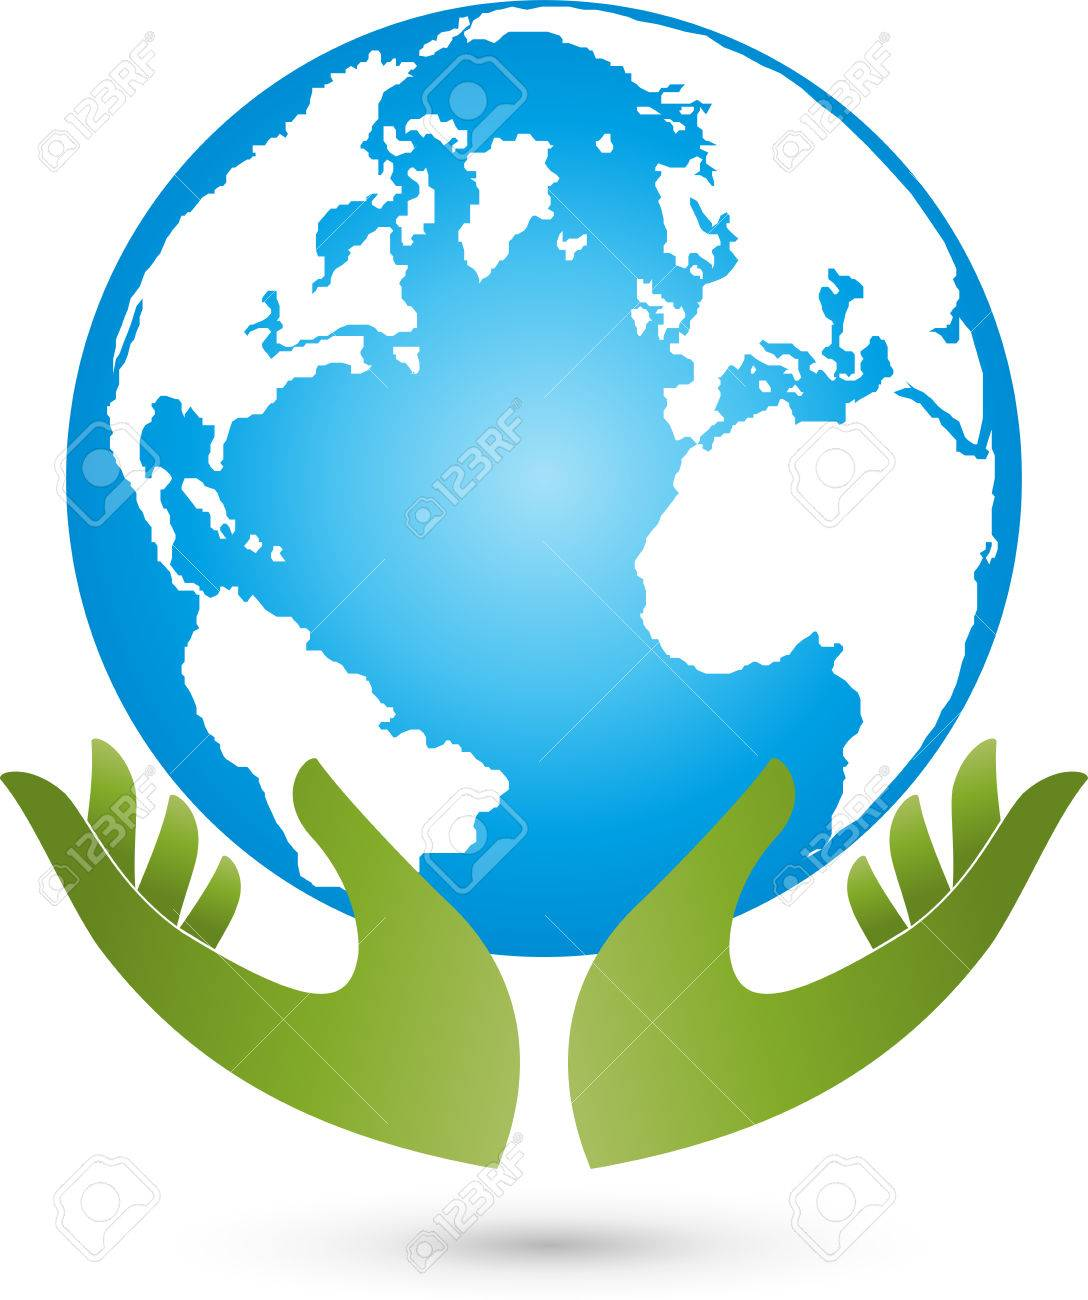 earth and hands globe world globe vector royalty free cliparts rh 123rf com world globe vector art world globe vector free download